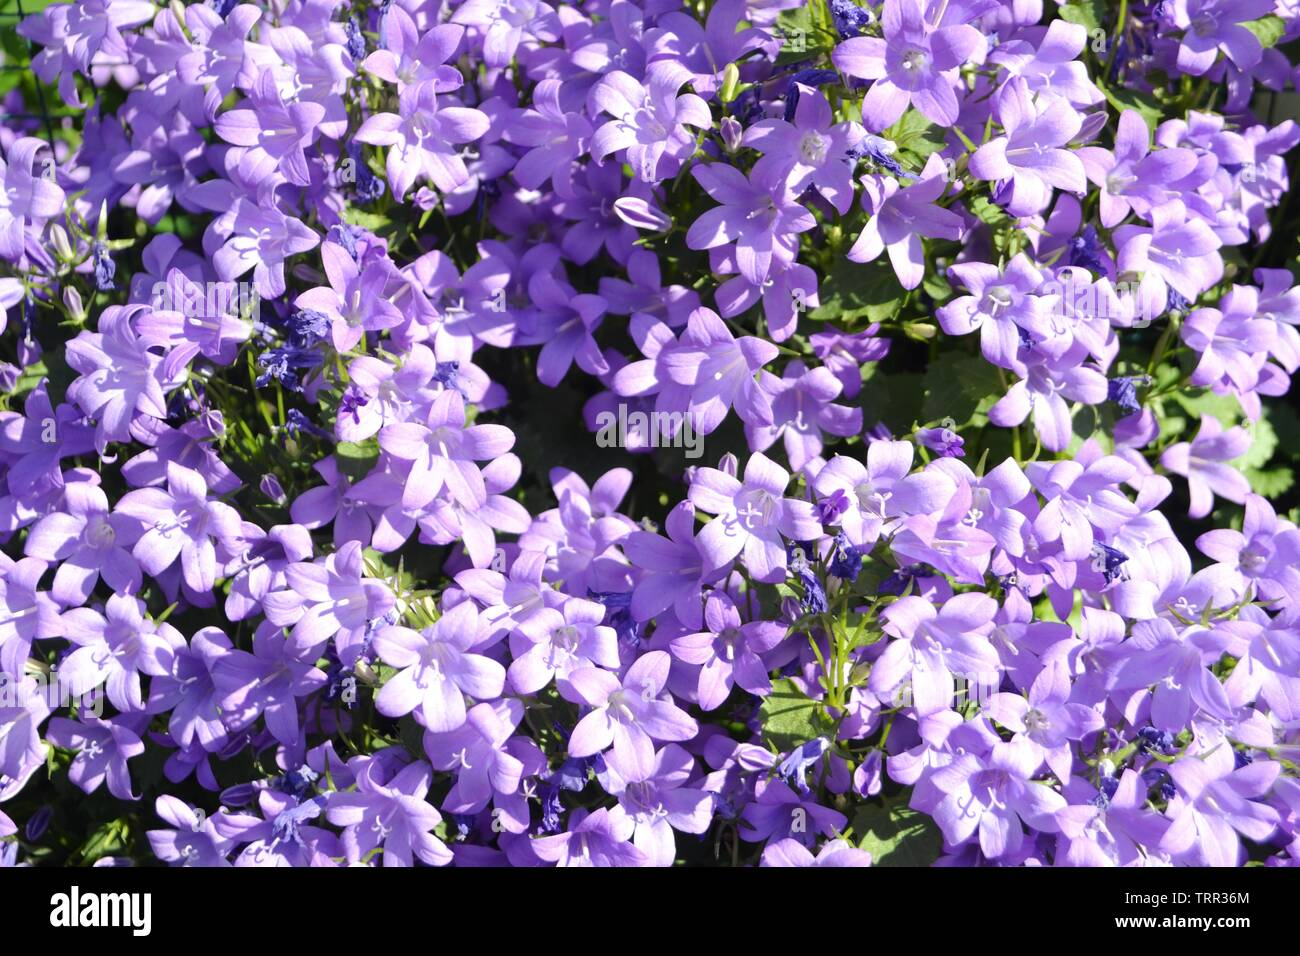 Close-up view to violet flowers of campanula portenschlagiana violet blooming brightly illuminated under the sun. Stock Photo